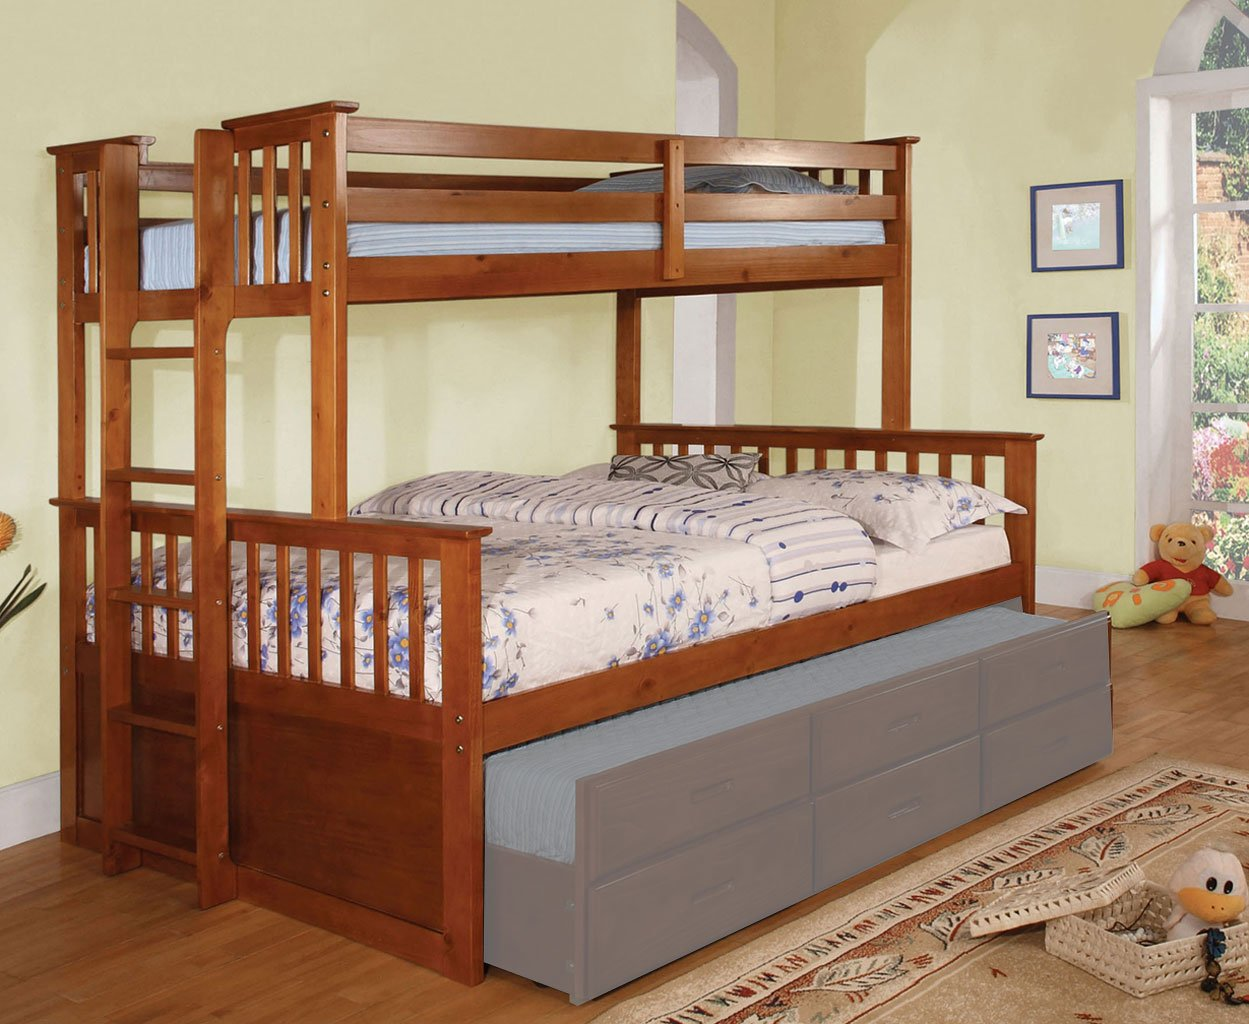 University Twin Over Queen Bunk Bed Oak Kids Loft And Bunk Beds Kids And Youth Furniture